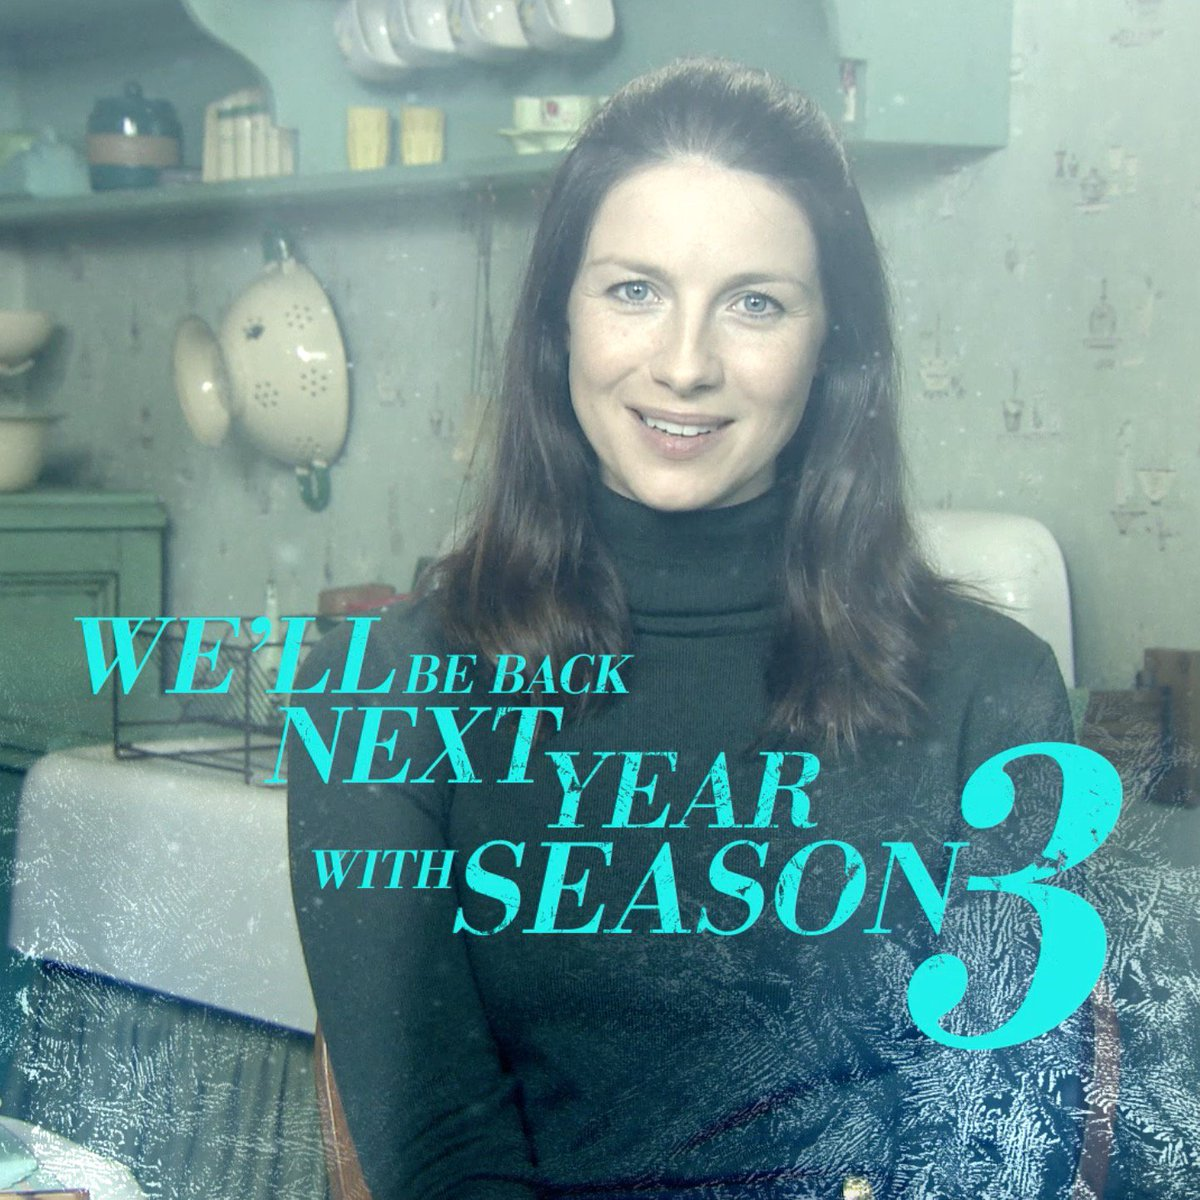 A little Christmas message from our very own @caitrionambalfe